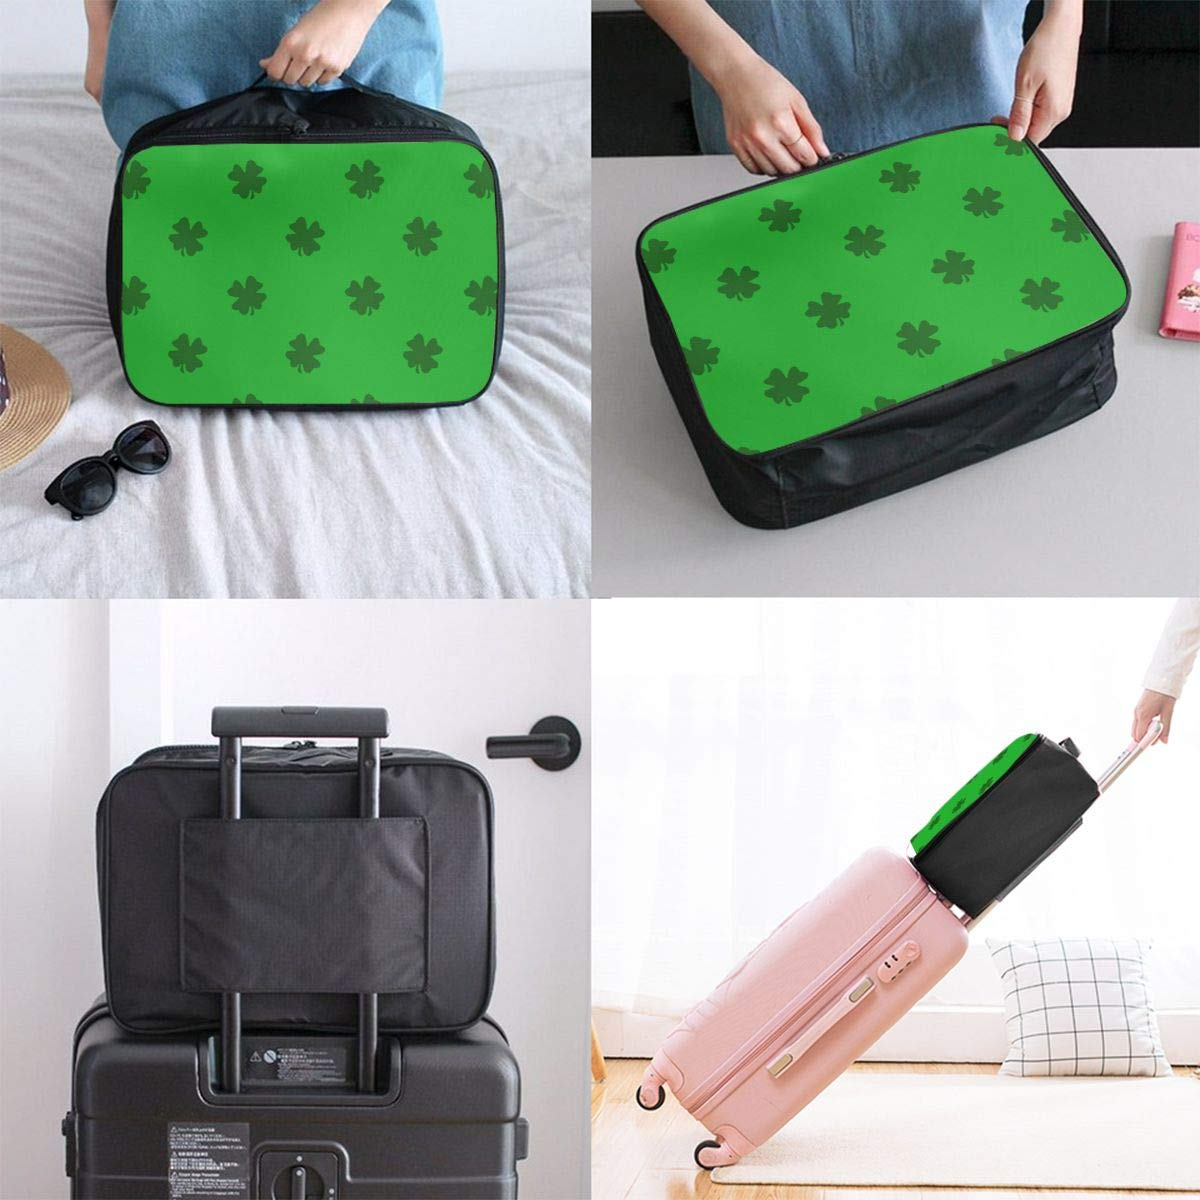 Saint Patrick Shamrocks Traditional Travel Lightweight Waterproof Folding Storage Carry Luggage Duffle Tote Bag Large Capacity In Trolley Handle Bags 6x11x15 Inch